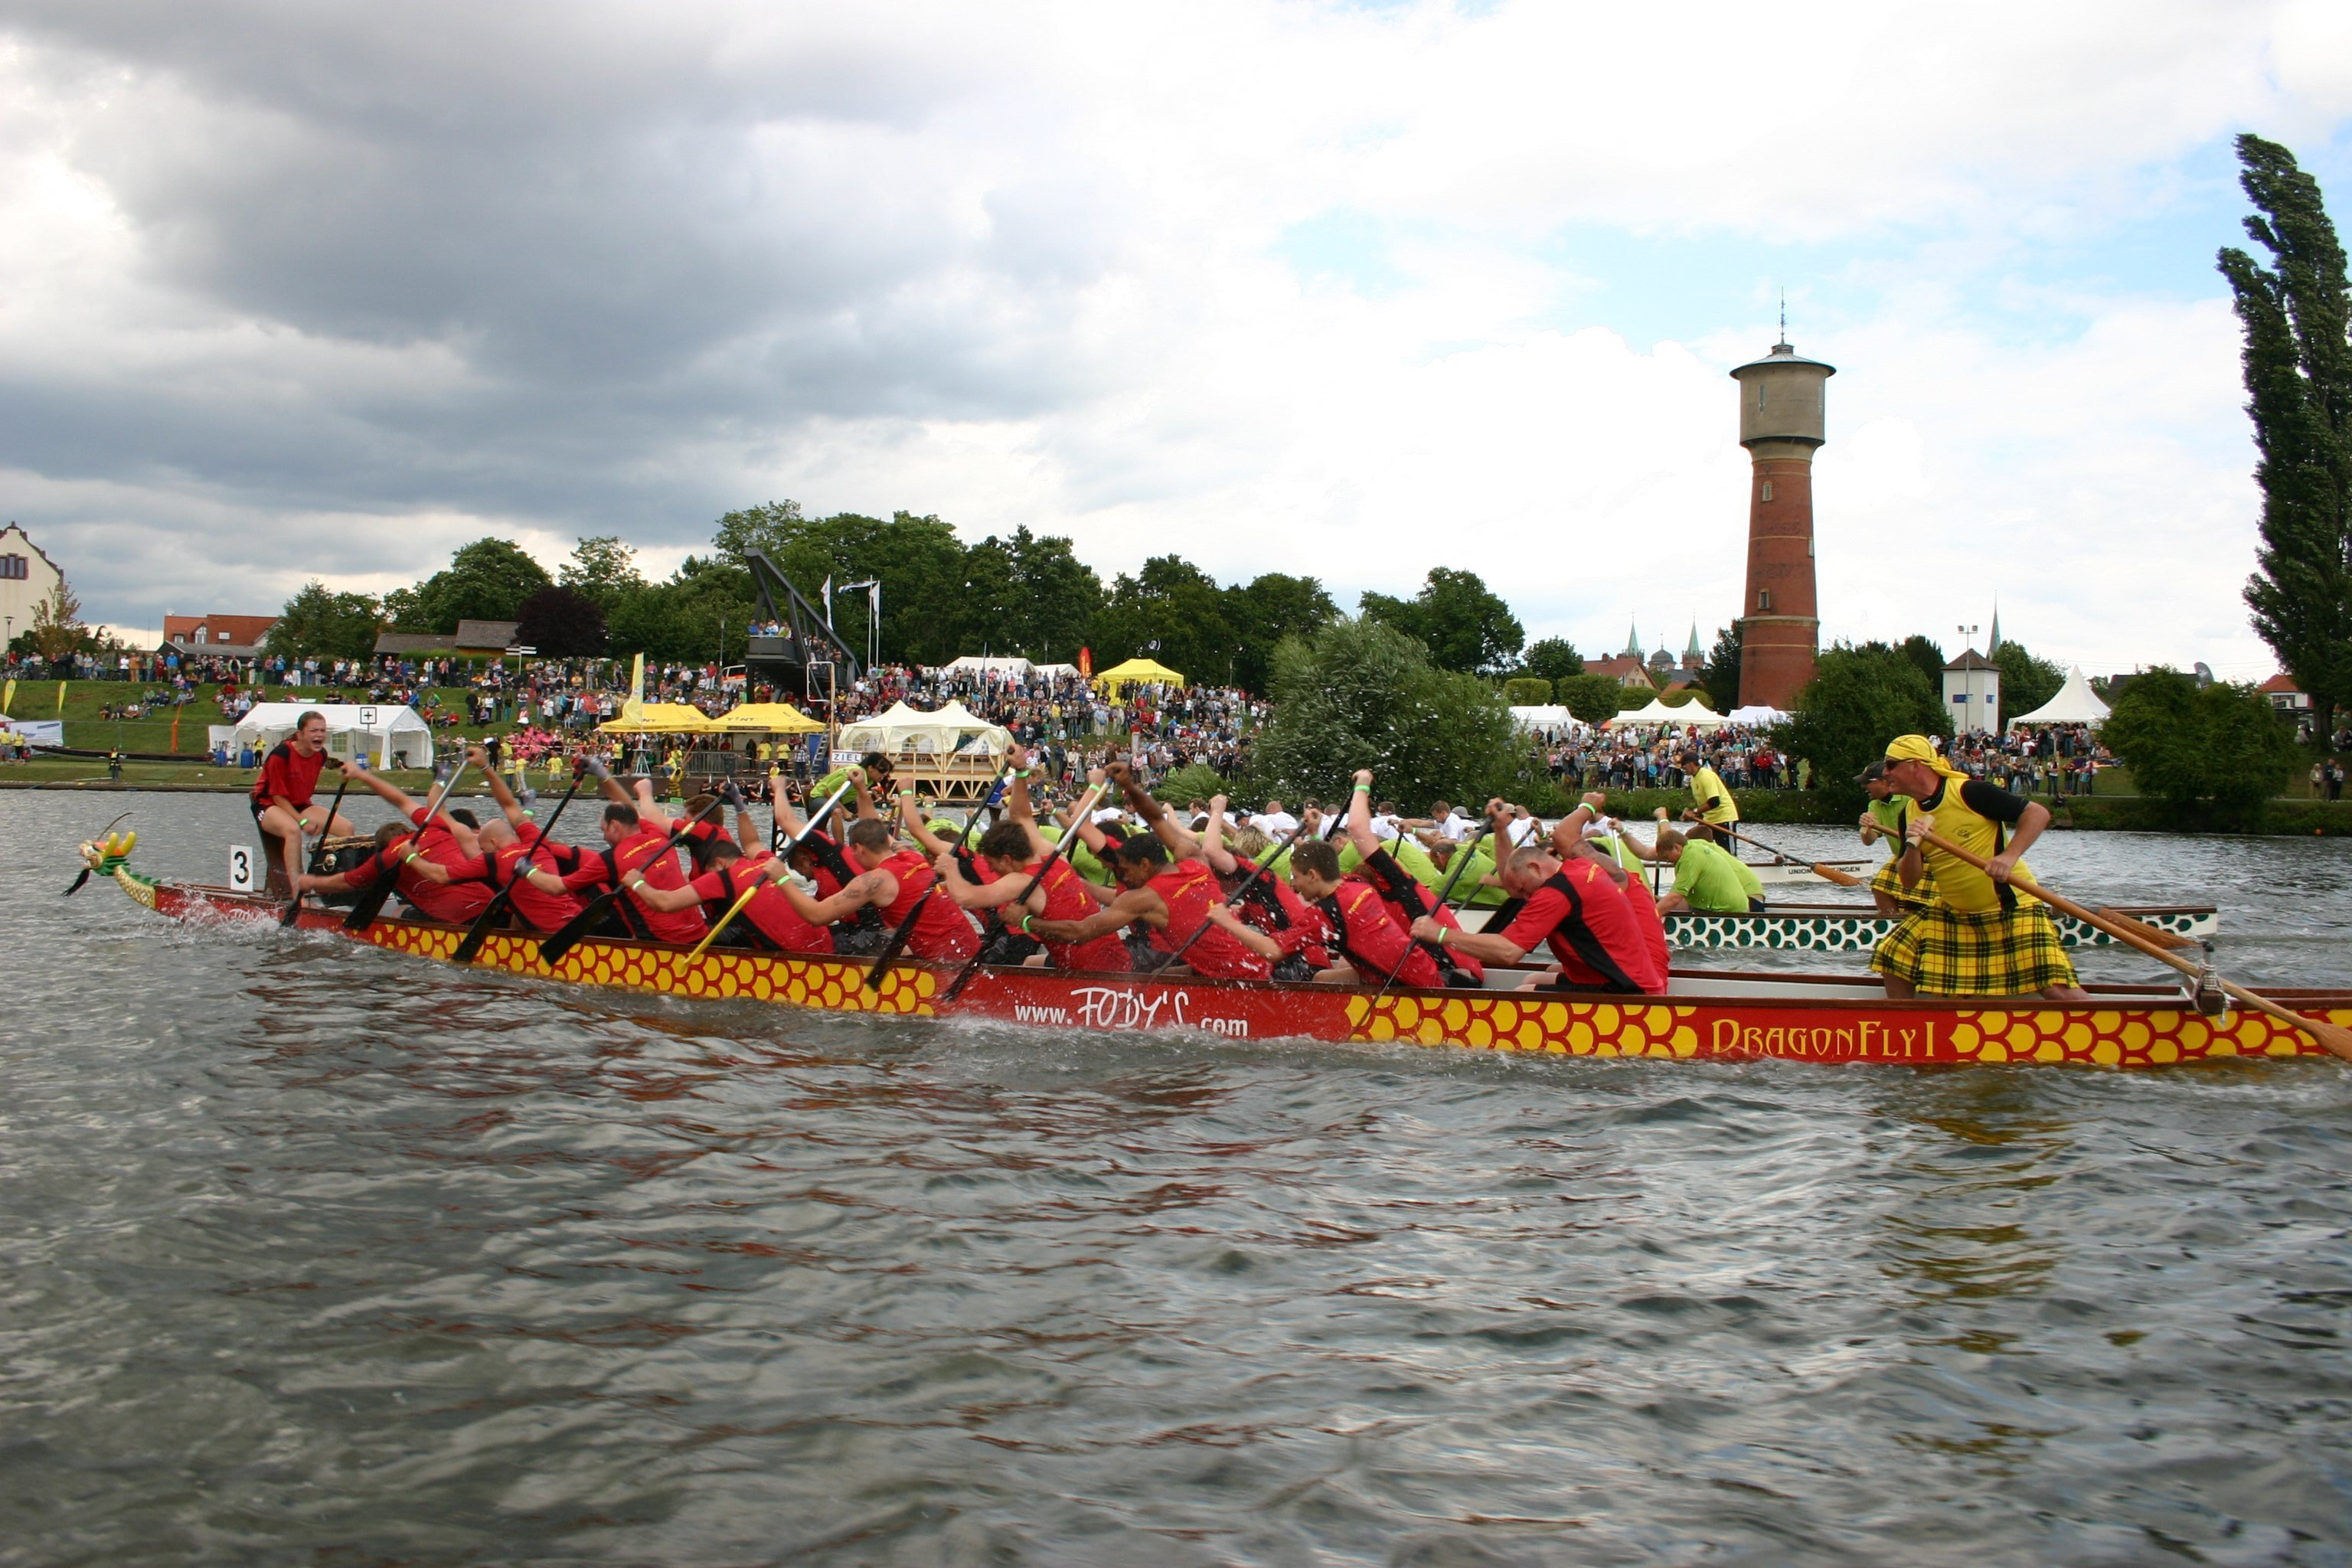 Drachenboot der Römer Dragons Ladenburg